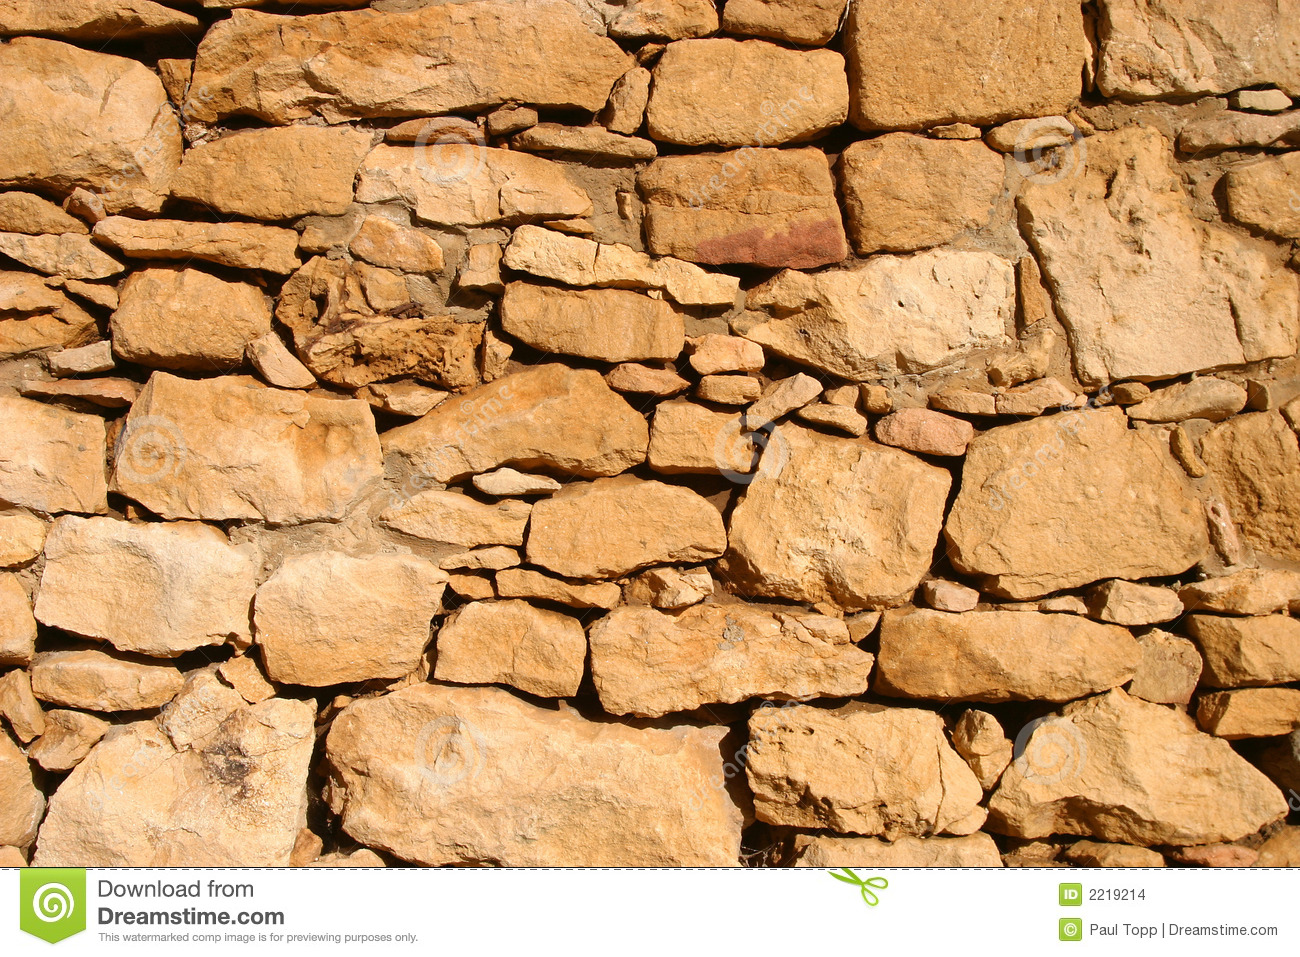 Ancient Rock Wall Background Image Stock Images - Image: 2219214